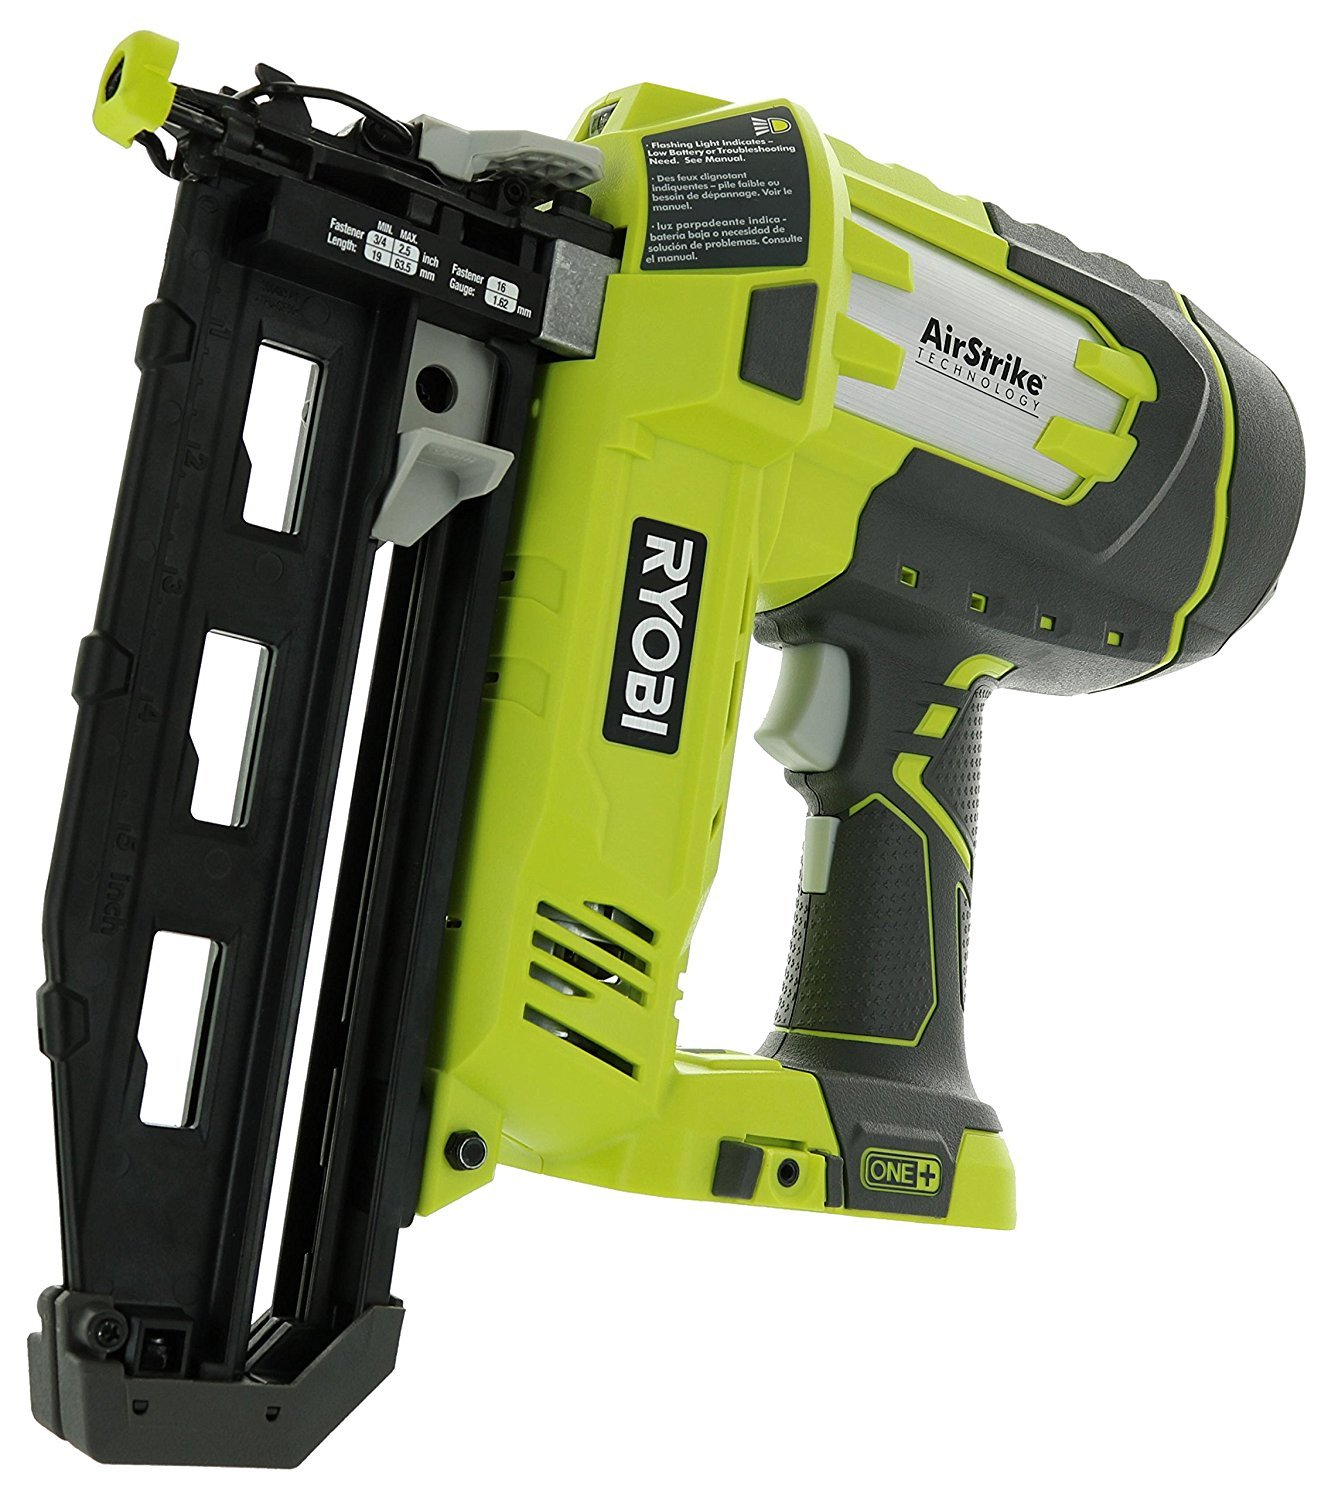 Ryobi P325 One+ 18V Lithium Ion Battery Powered Cordless 16 Gauge Finish Nailer (Battery Not Included, Power Tool Only)